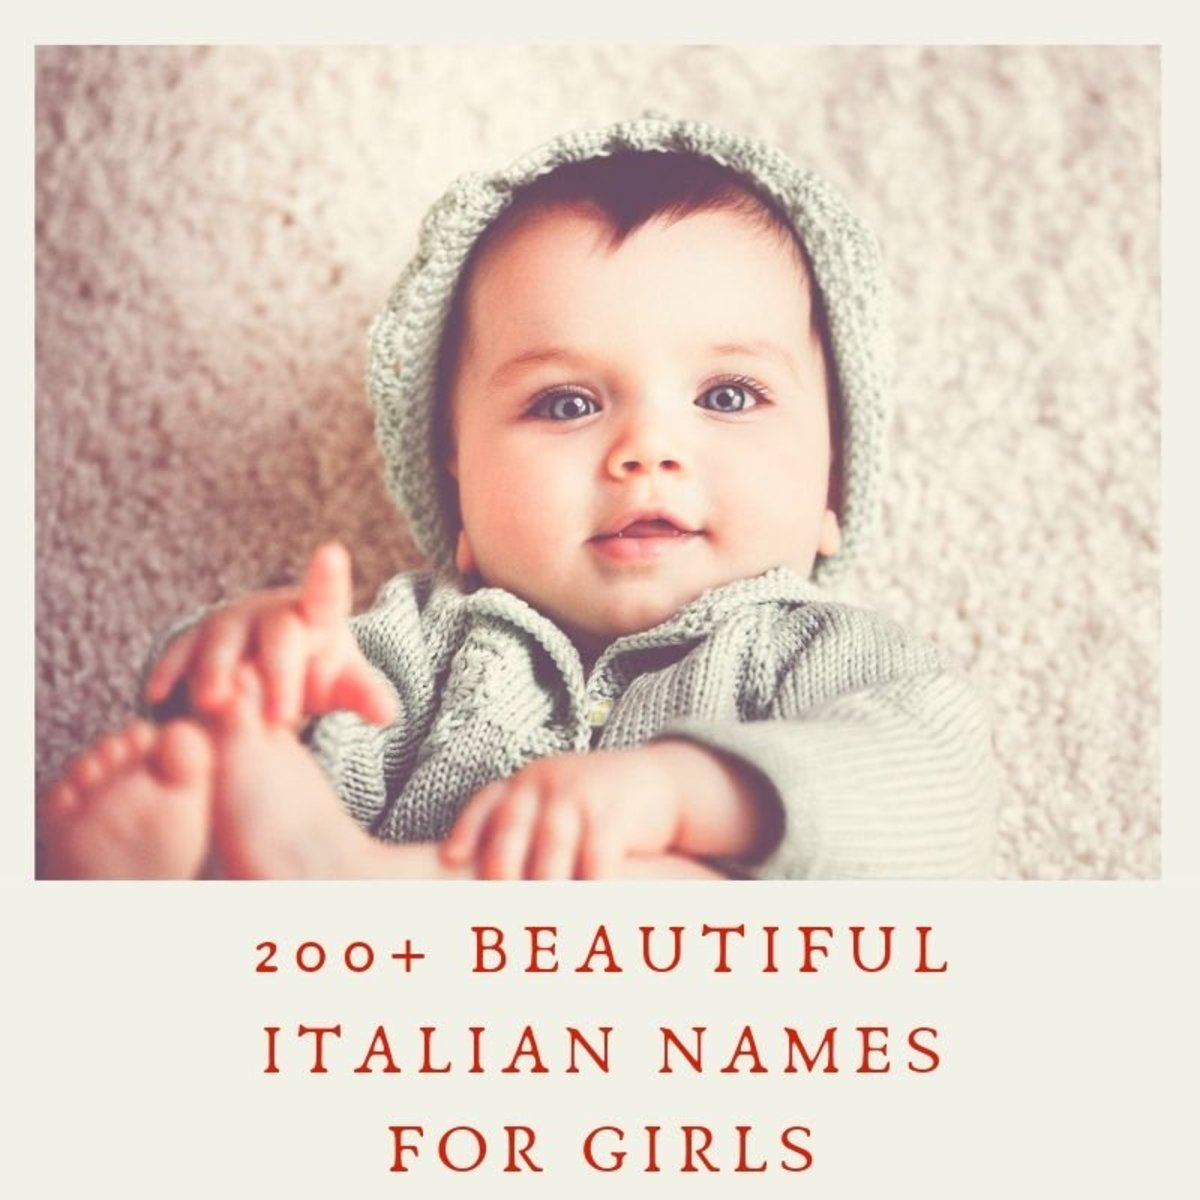 200+ Popular and Beautiful Italian Baby Girl Names